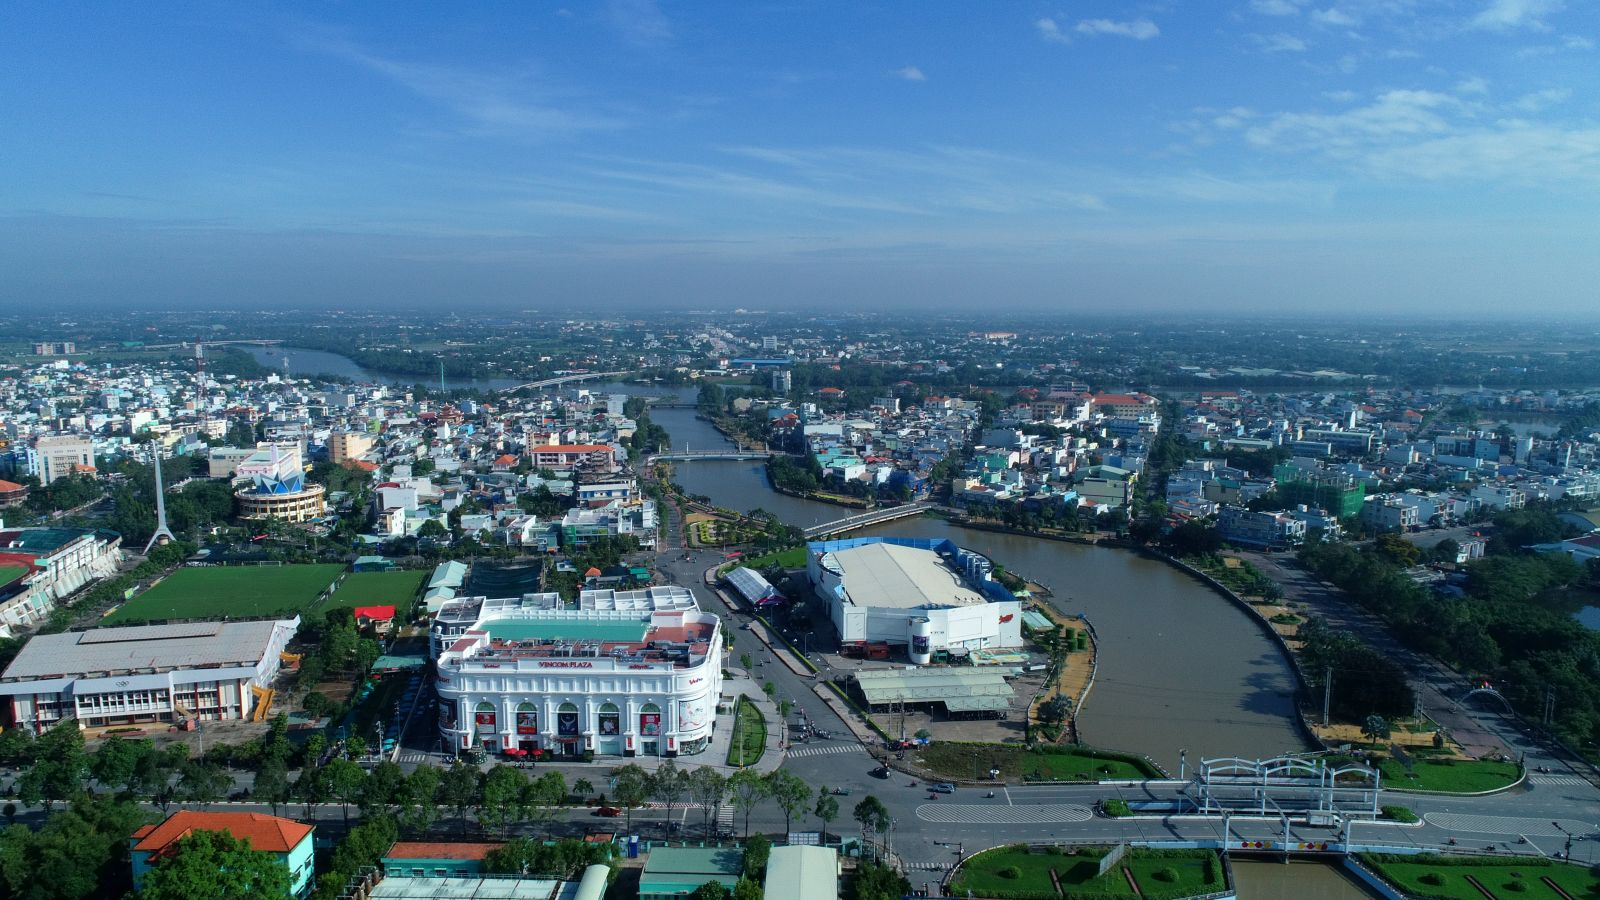 Tan An city is viewed from above (Photo: Thanh Nga)